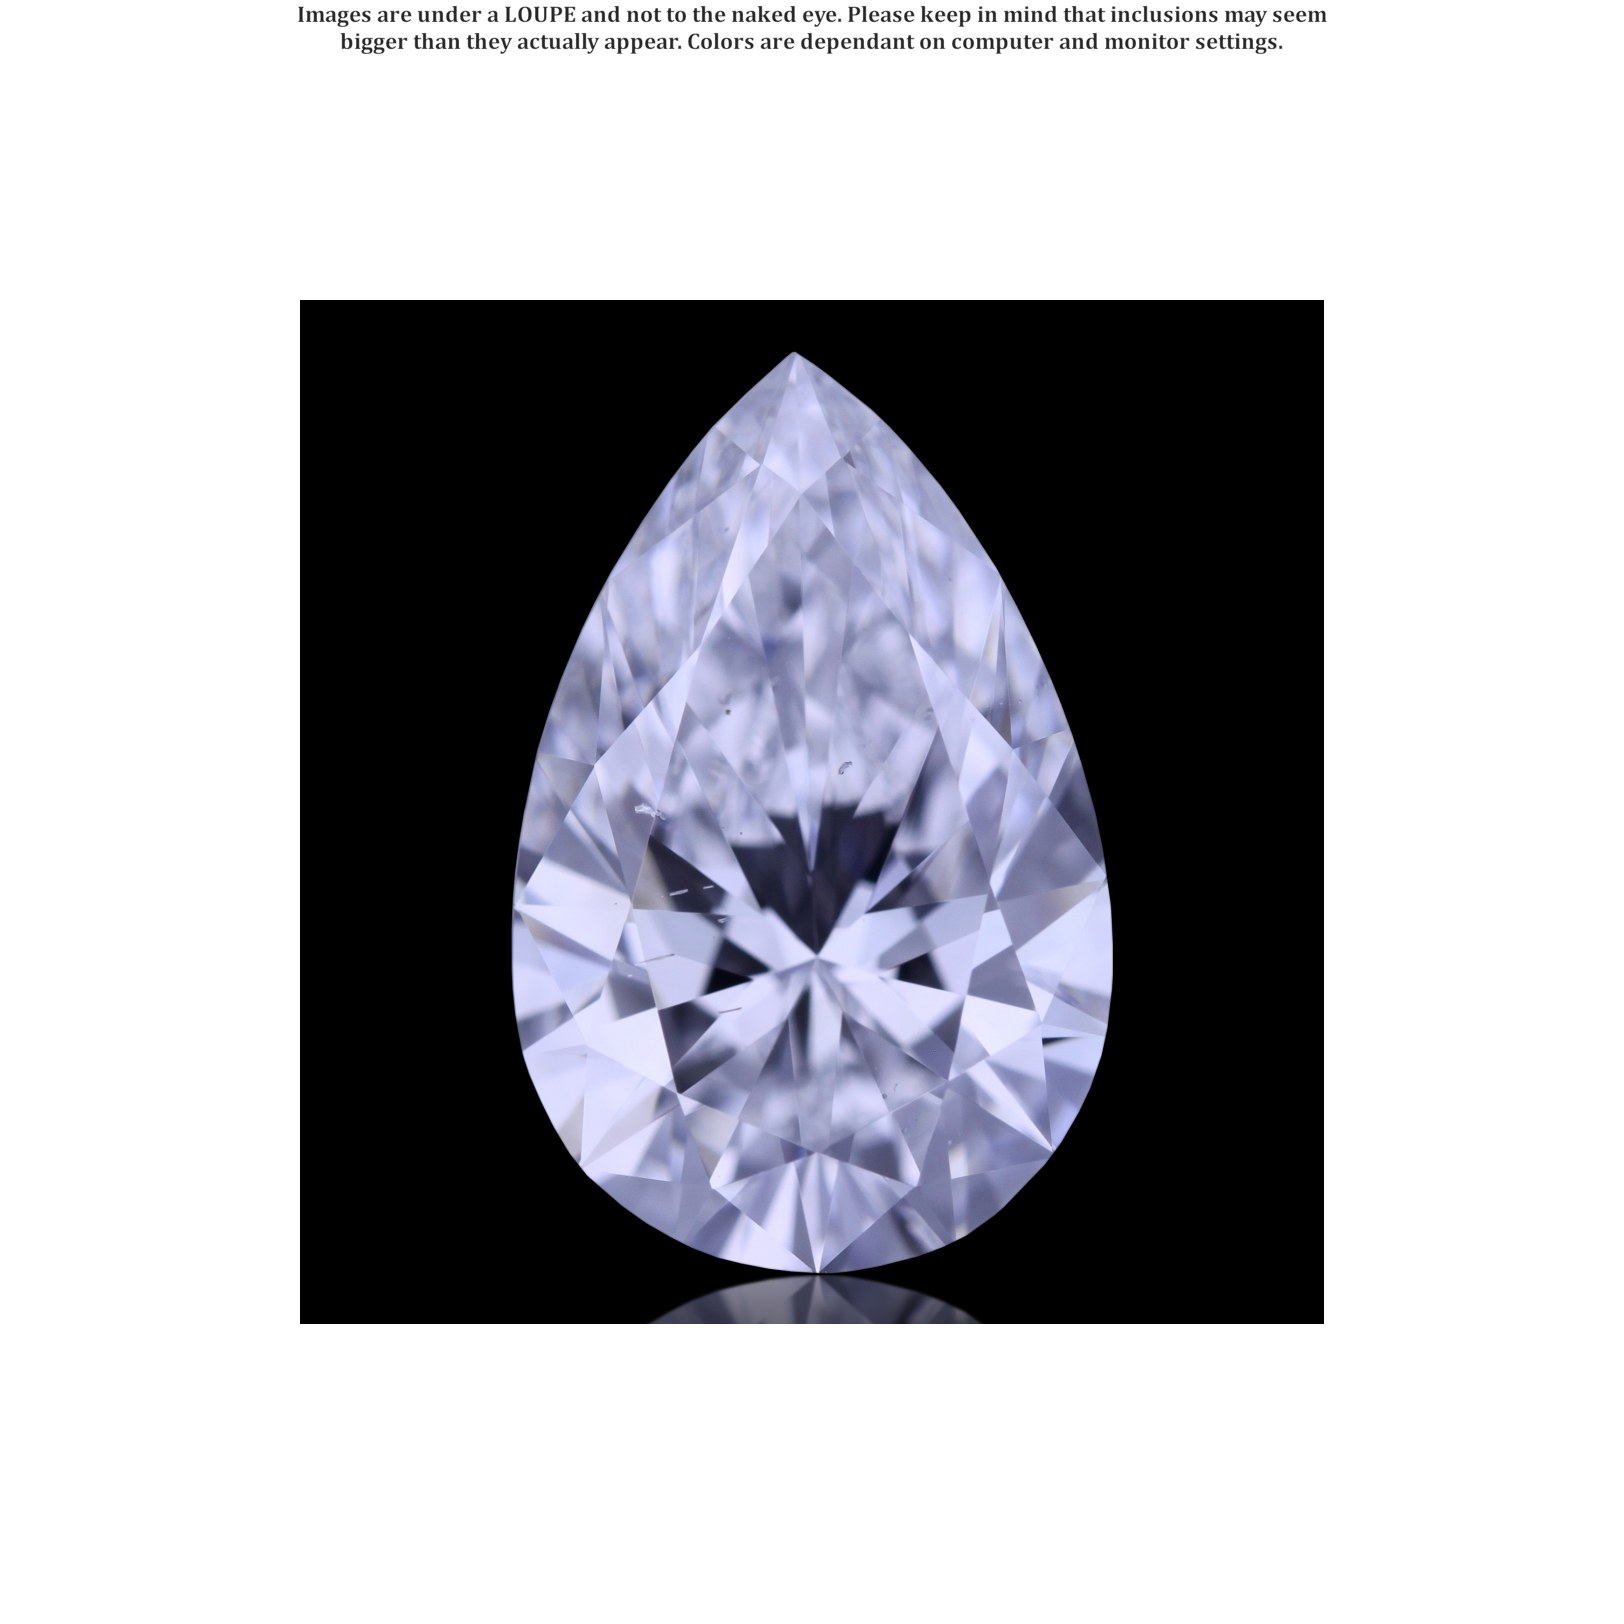 Quality Jewelers - Diamond Image - .00625